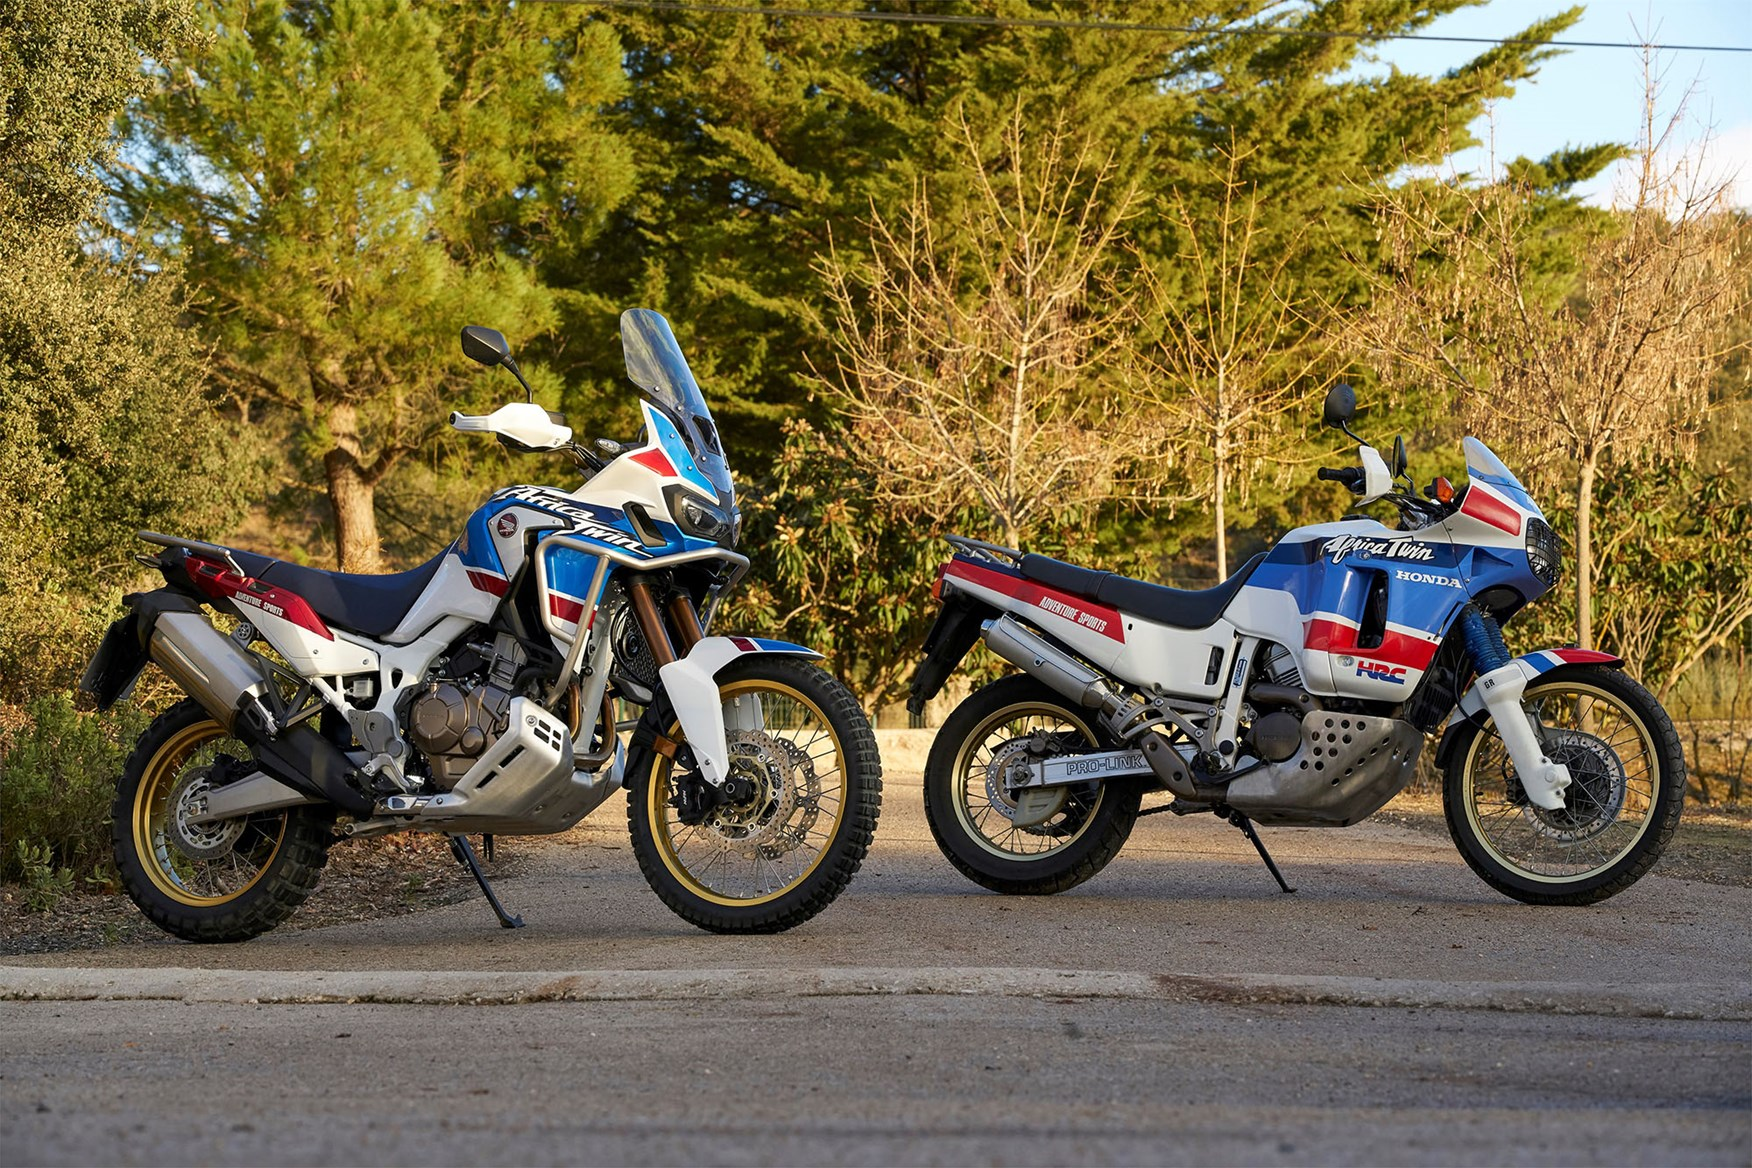 The existing Africa Twin with the original